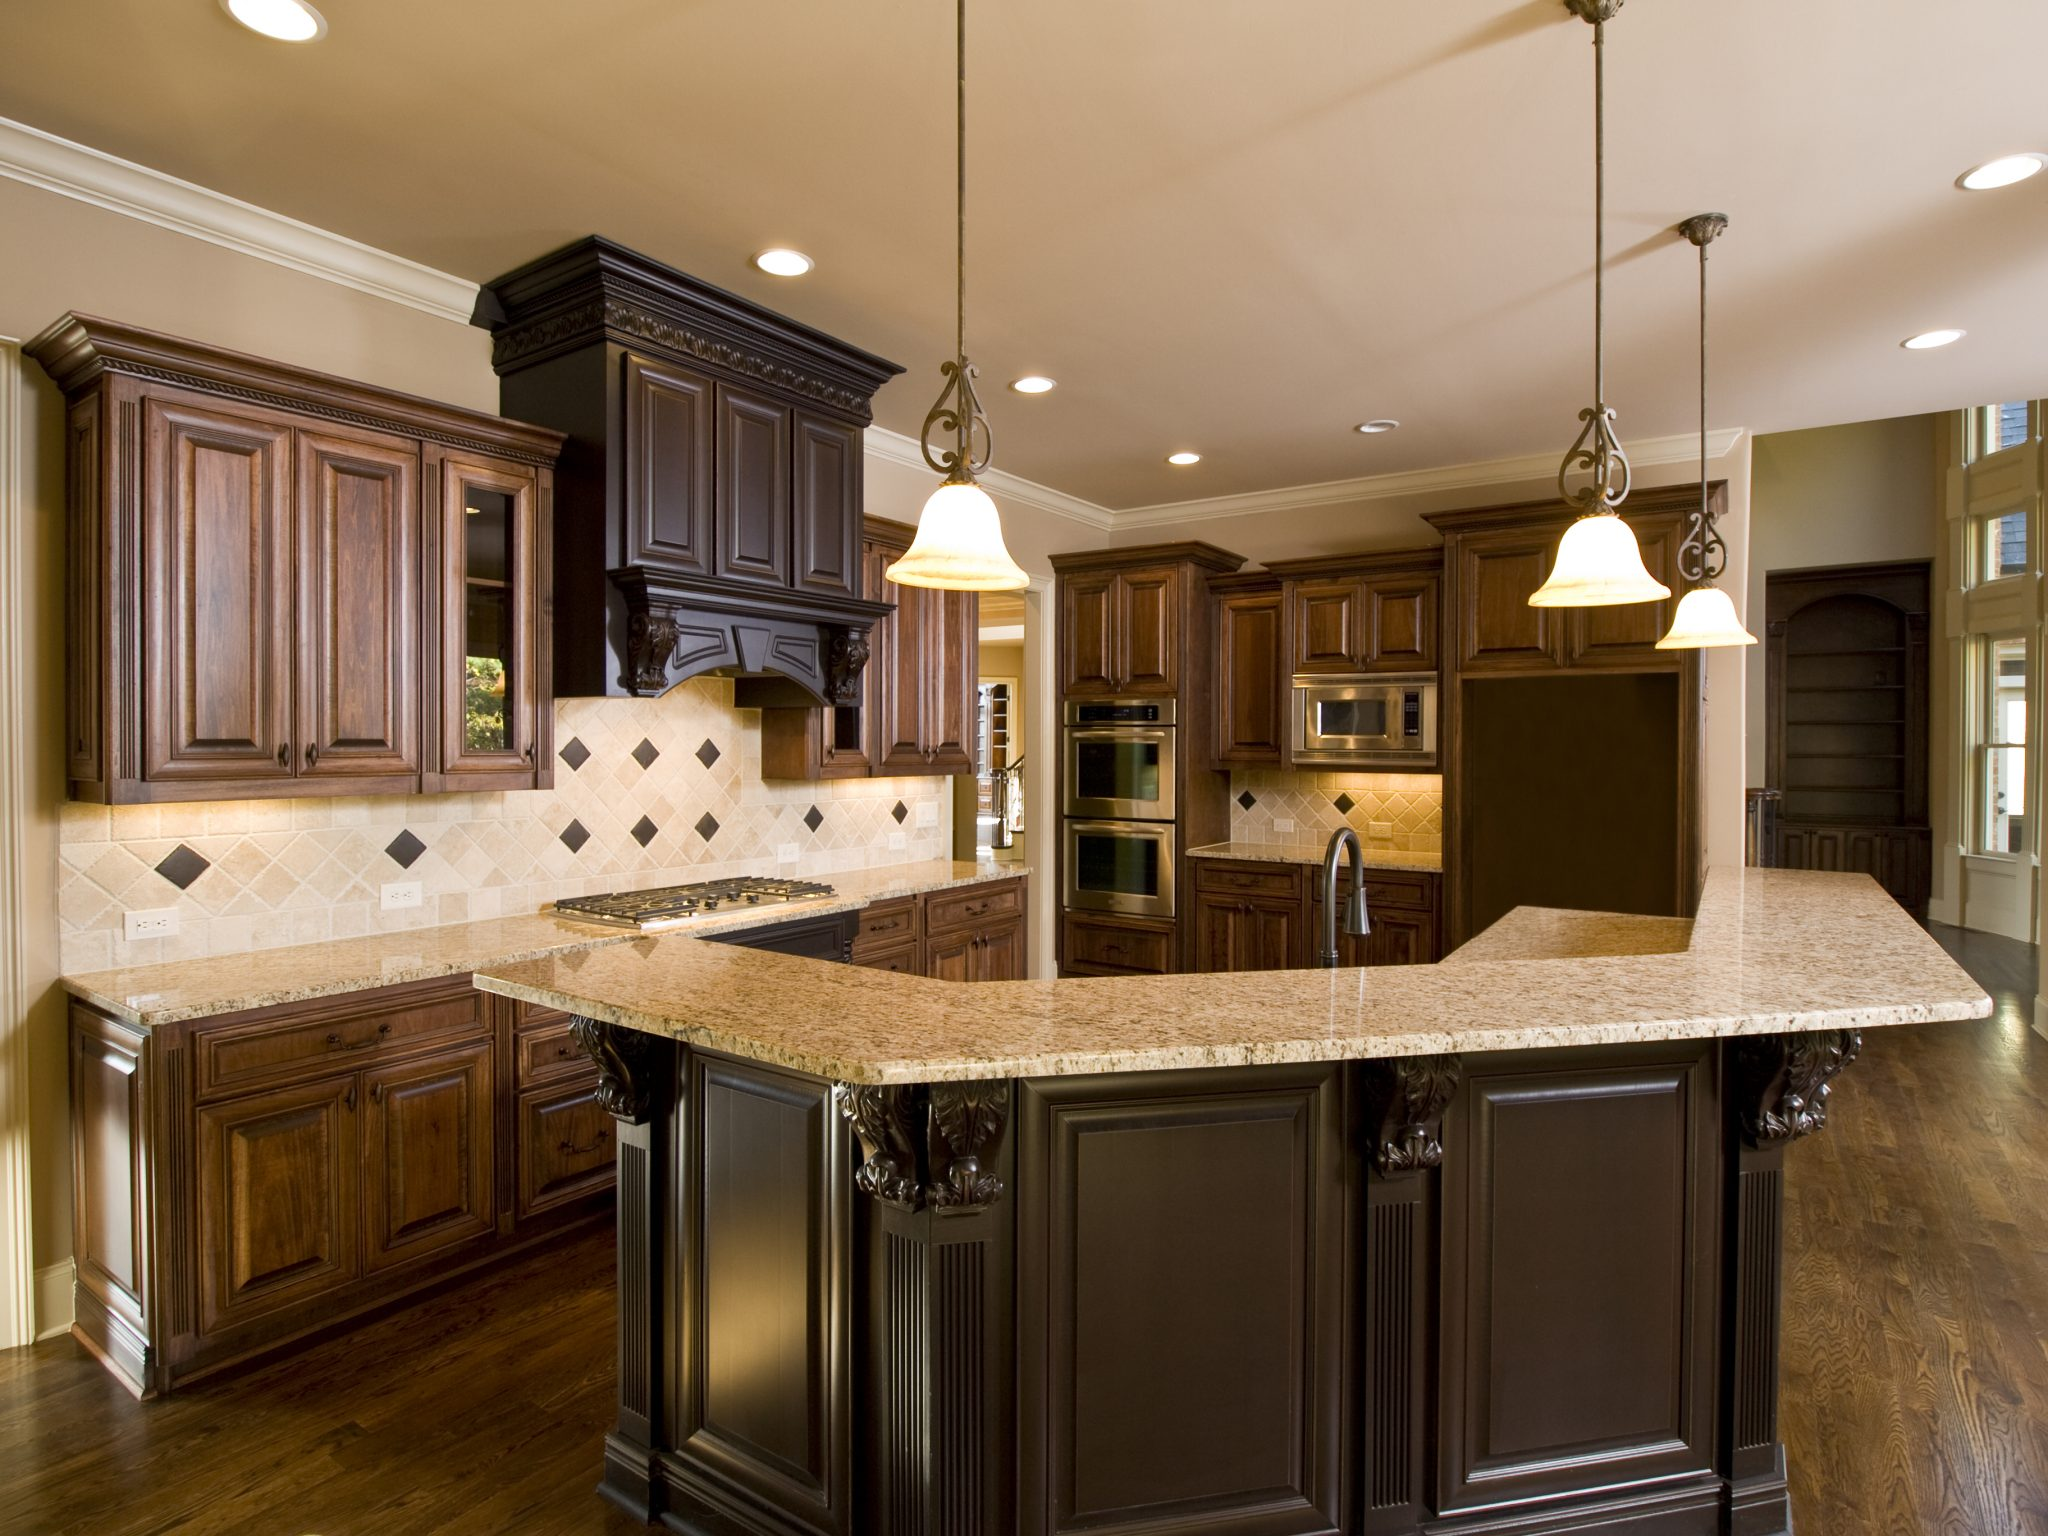 about us orlando home remodeling remodeling kitchen cabinets